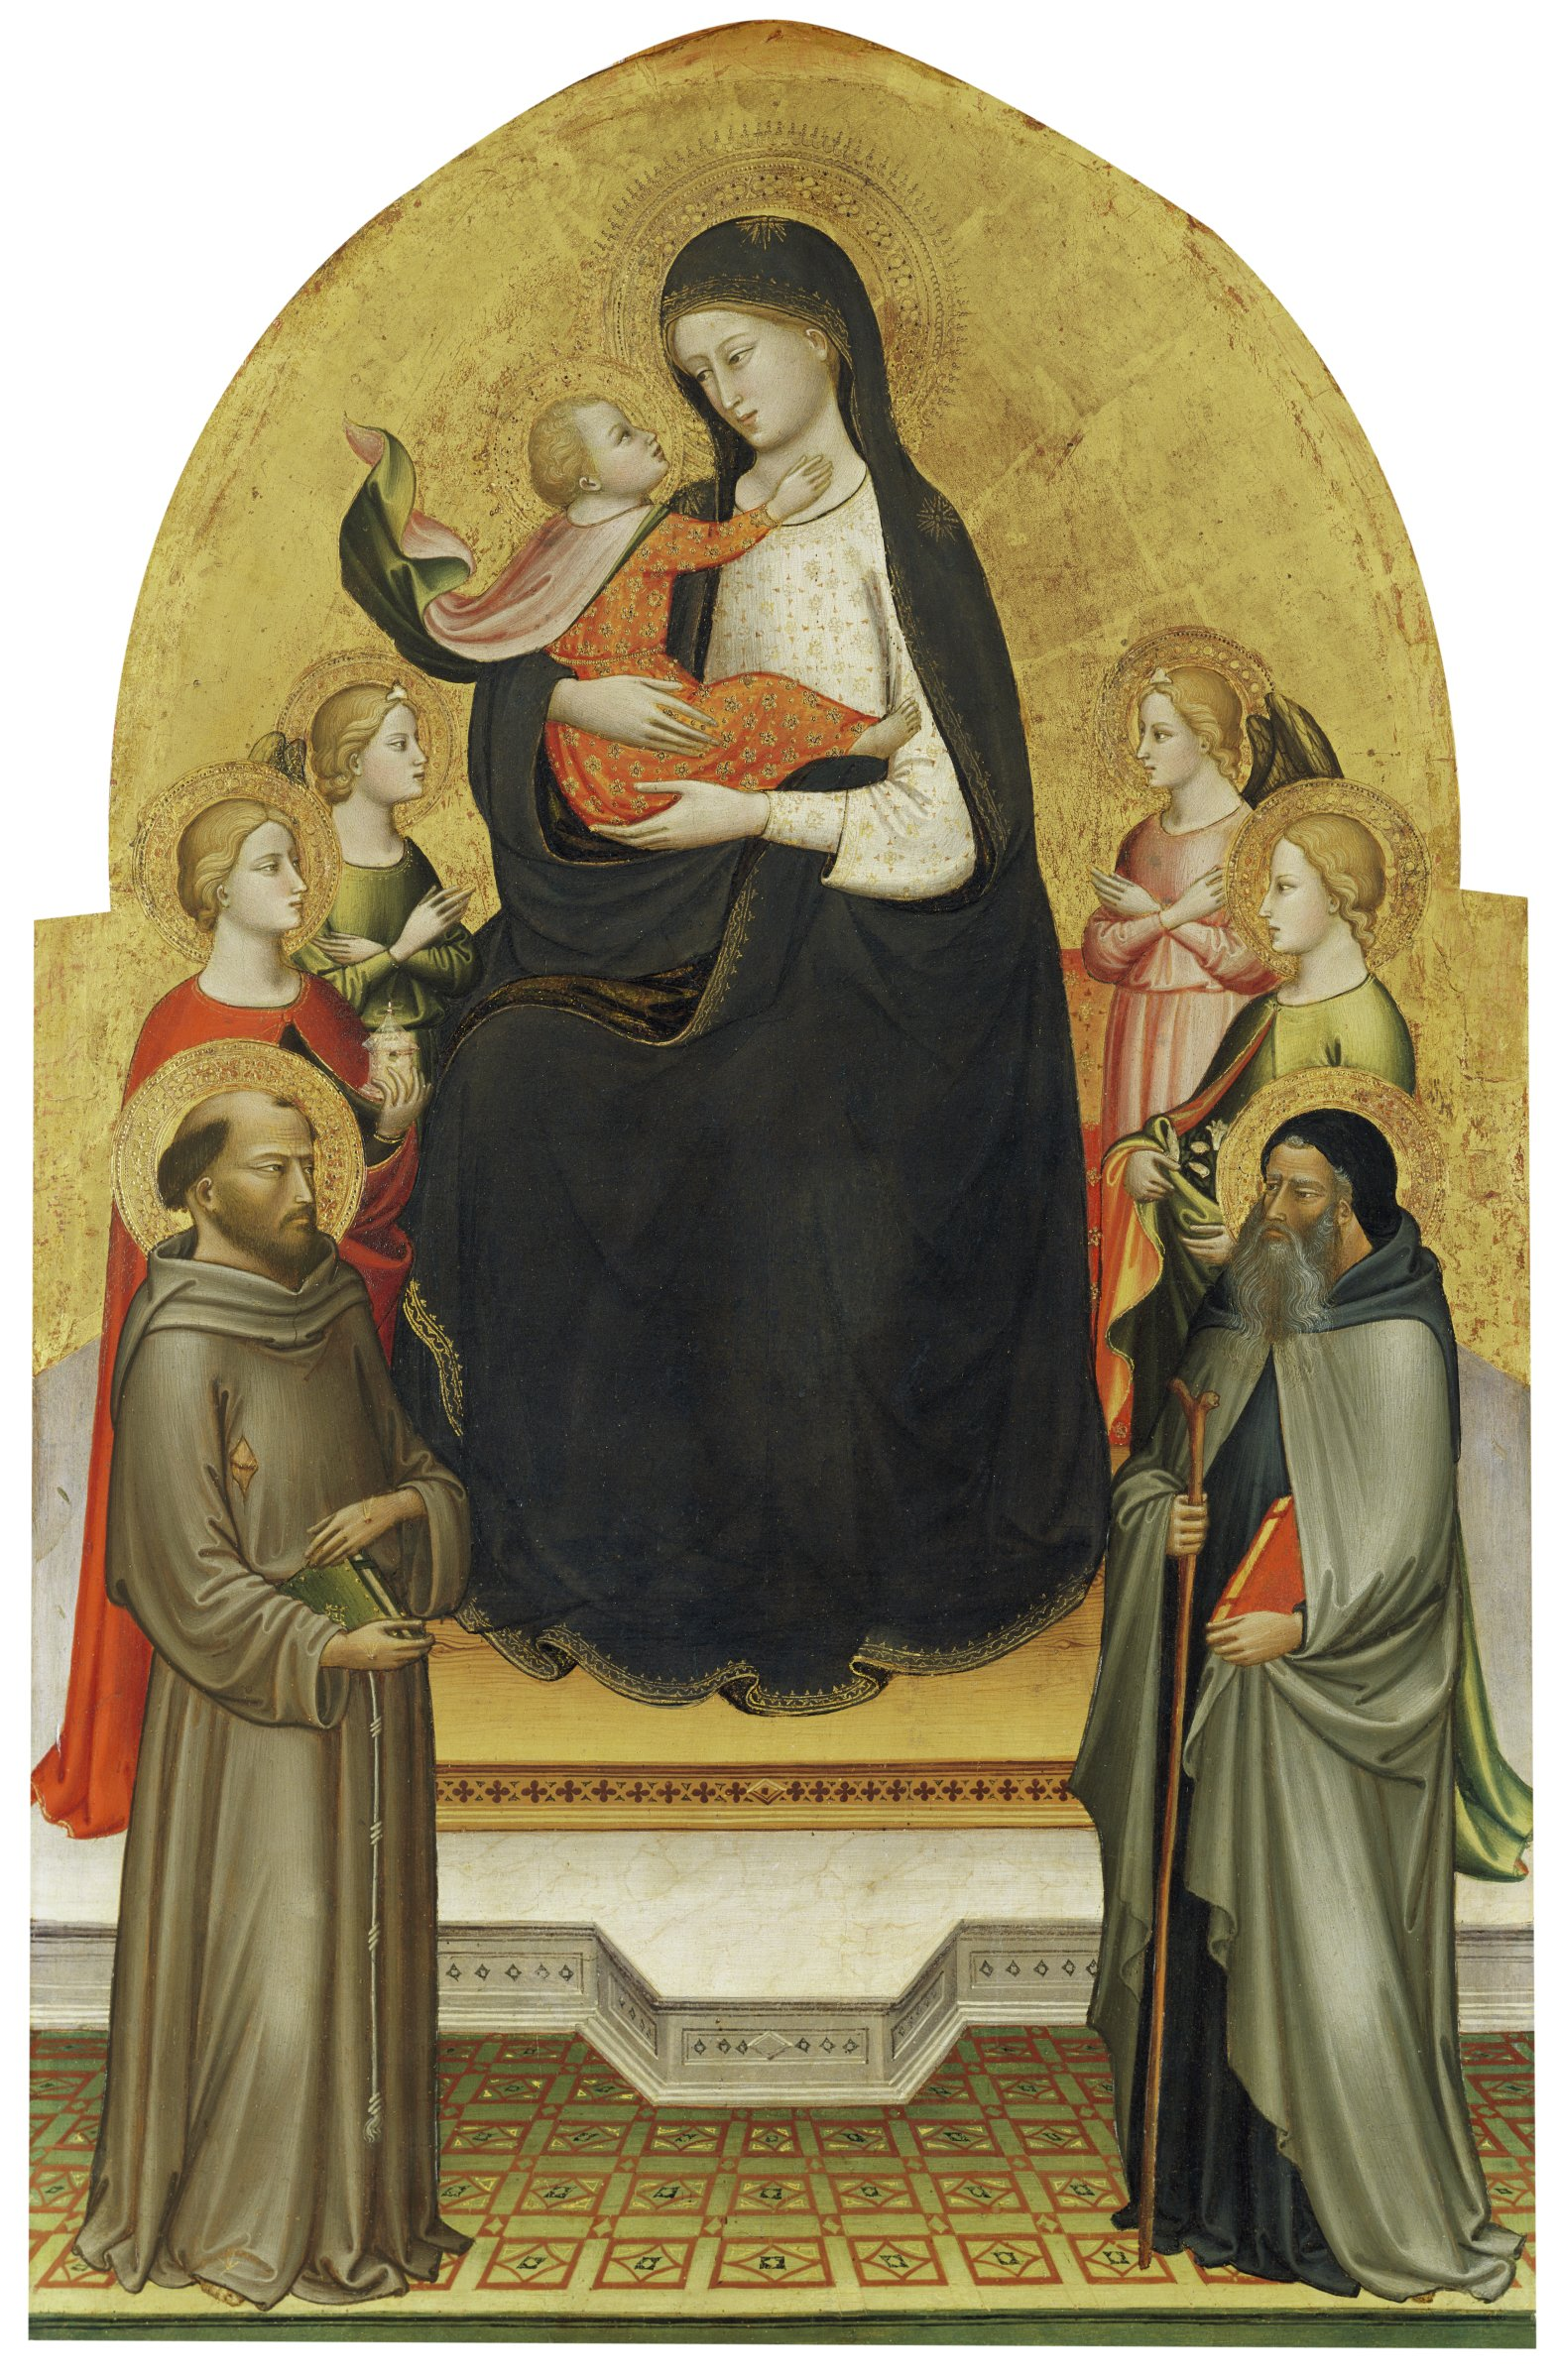 The Madonna sits on a throne, holding the Christ Child in her arms. They are surrounded by saints on both sides.